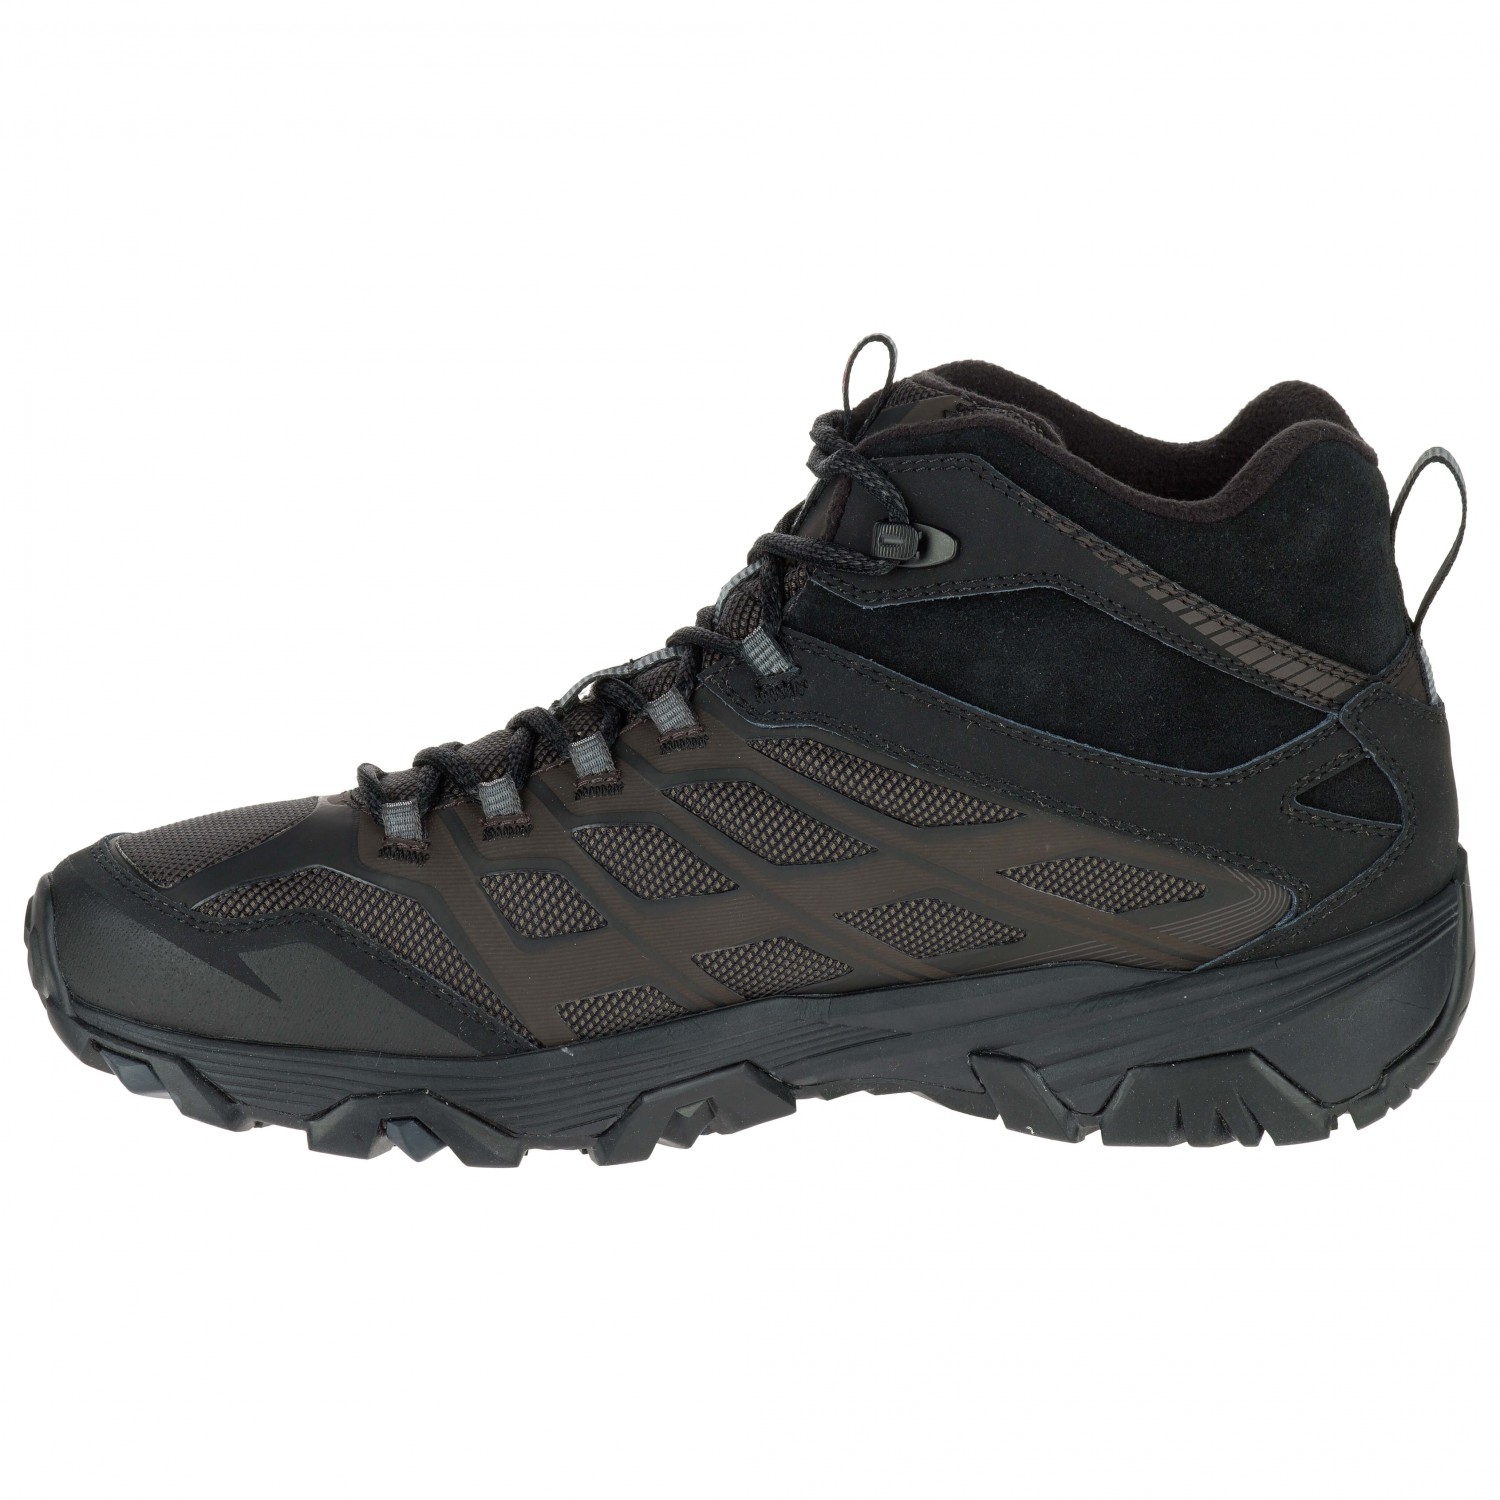 Merrell Moab FST Ice+ Thermo - Winter Boots Men s   Free UK Delivery ... aea5138b18